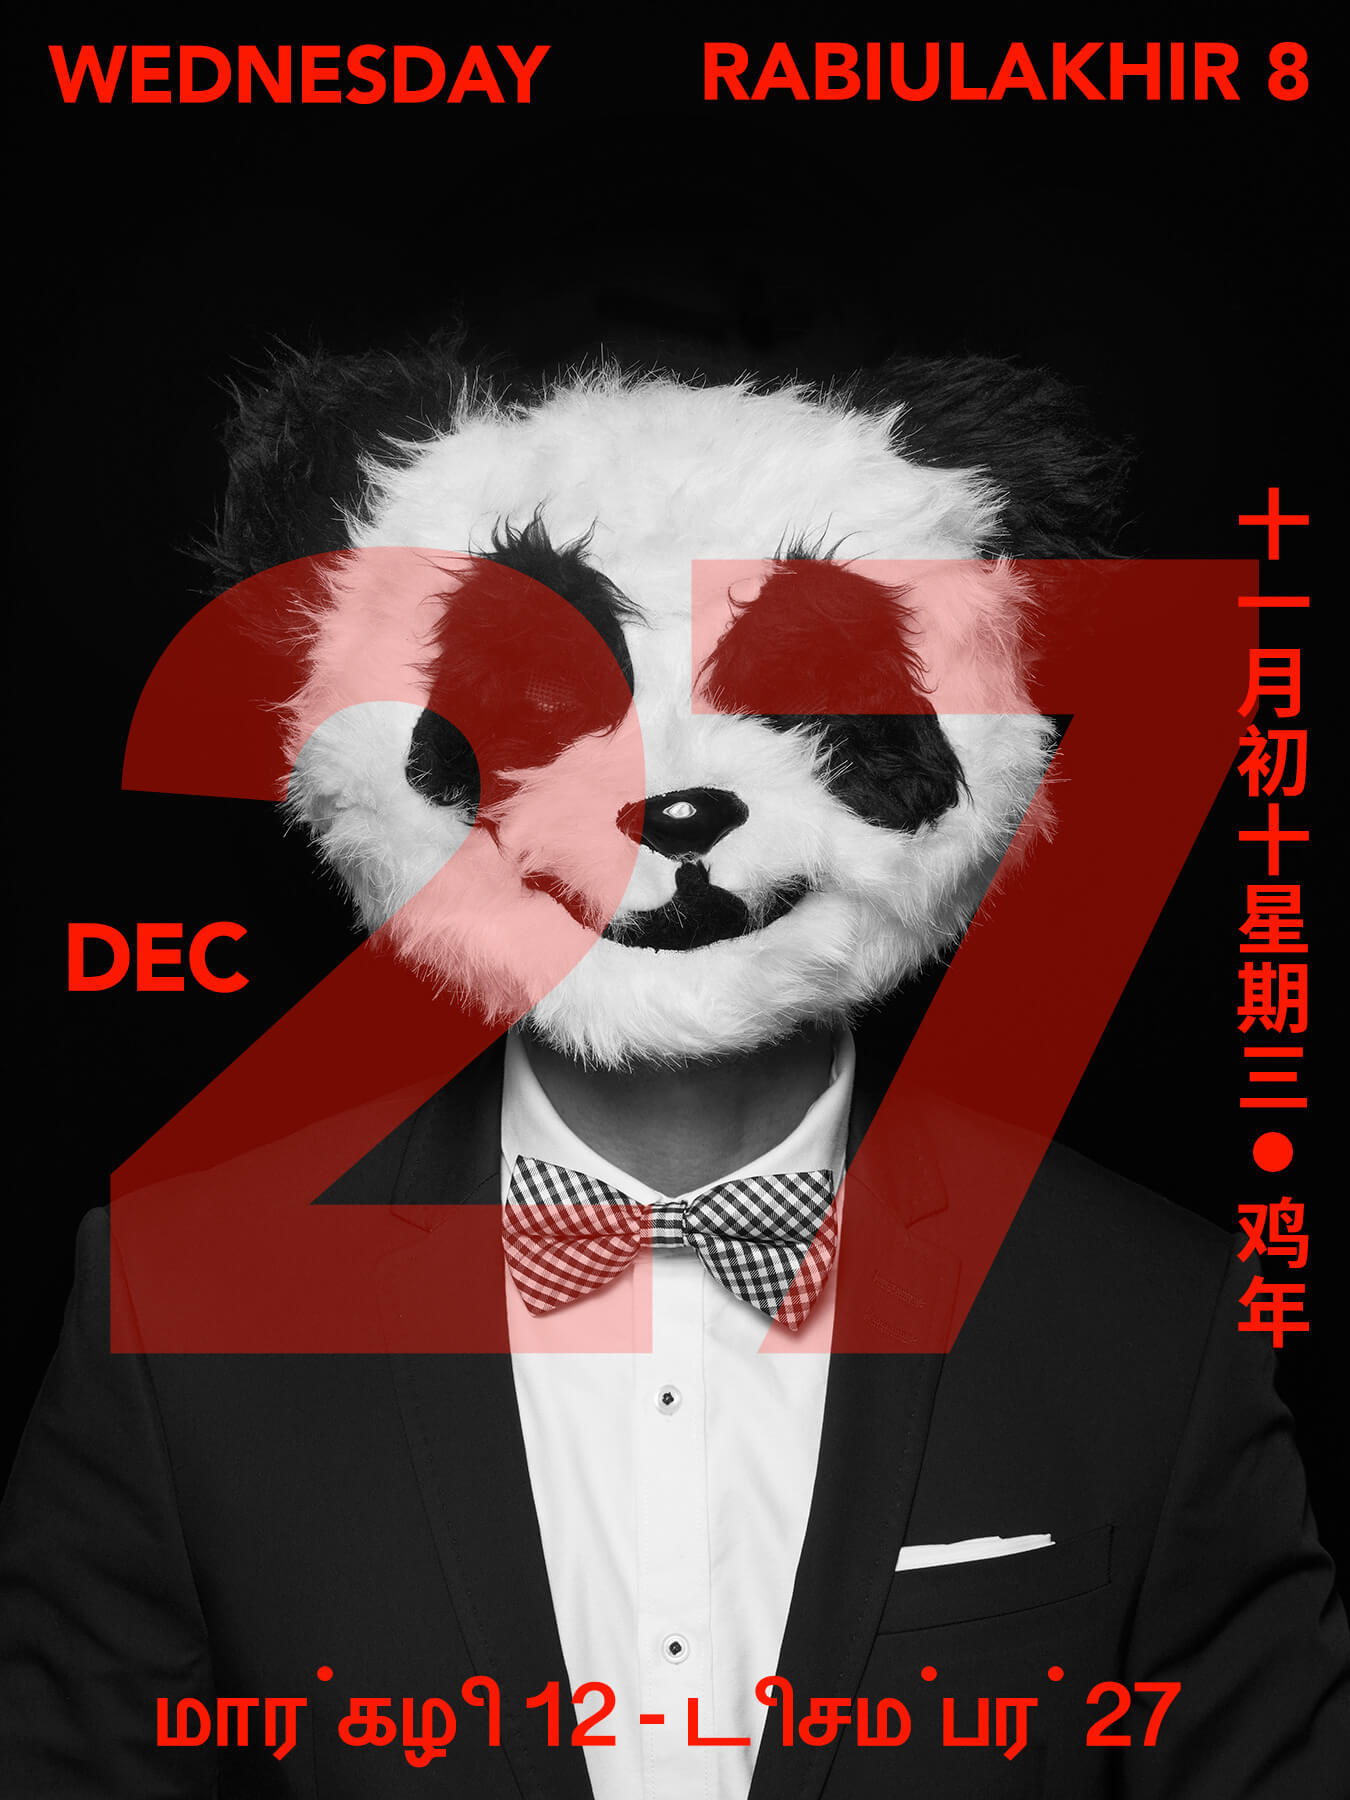 27 Dec 2017 Derong is wearing a bow tie and suit with a panda head mask